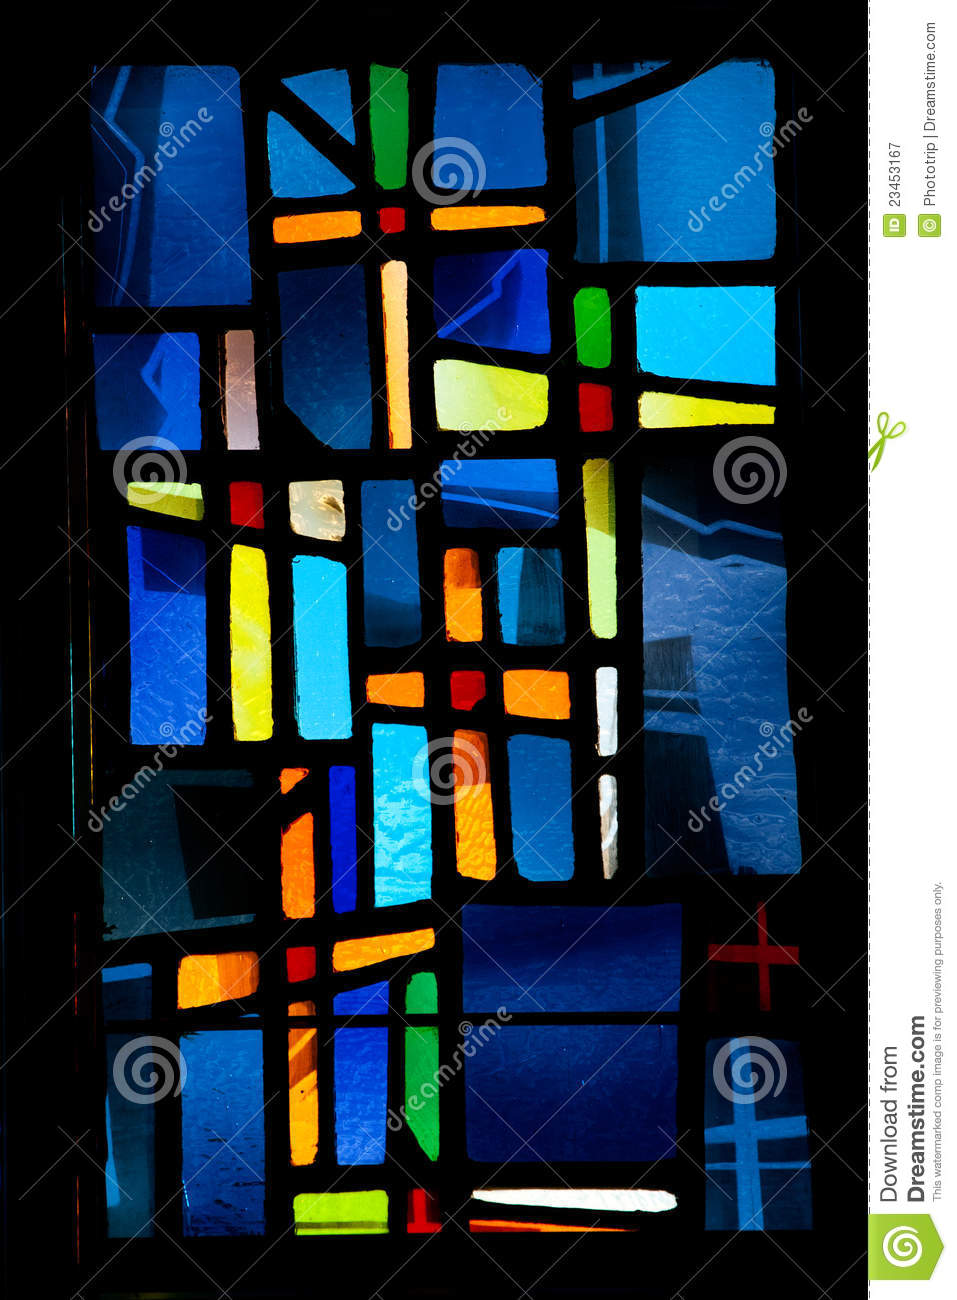 Easter Stained Glass Stained glass window cross